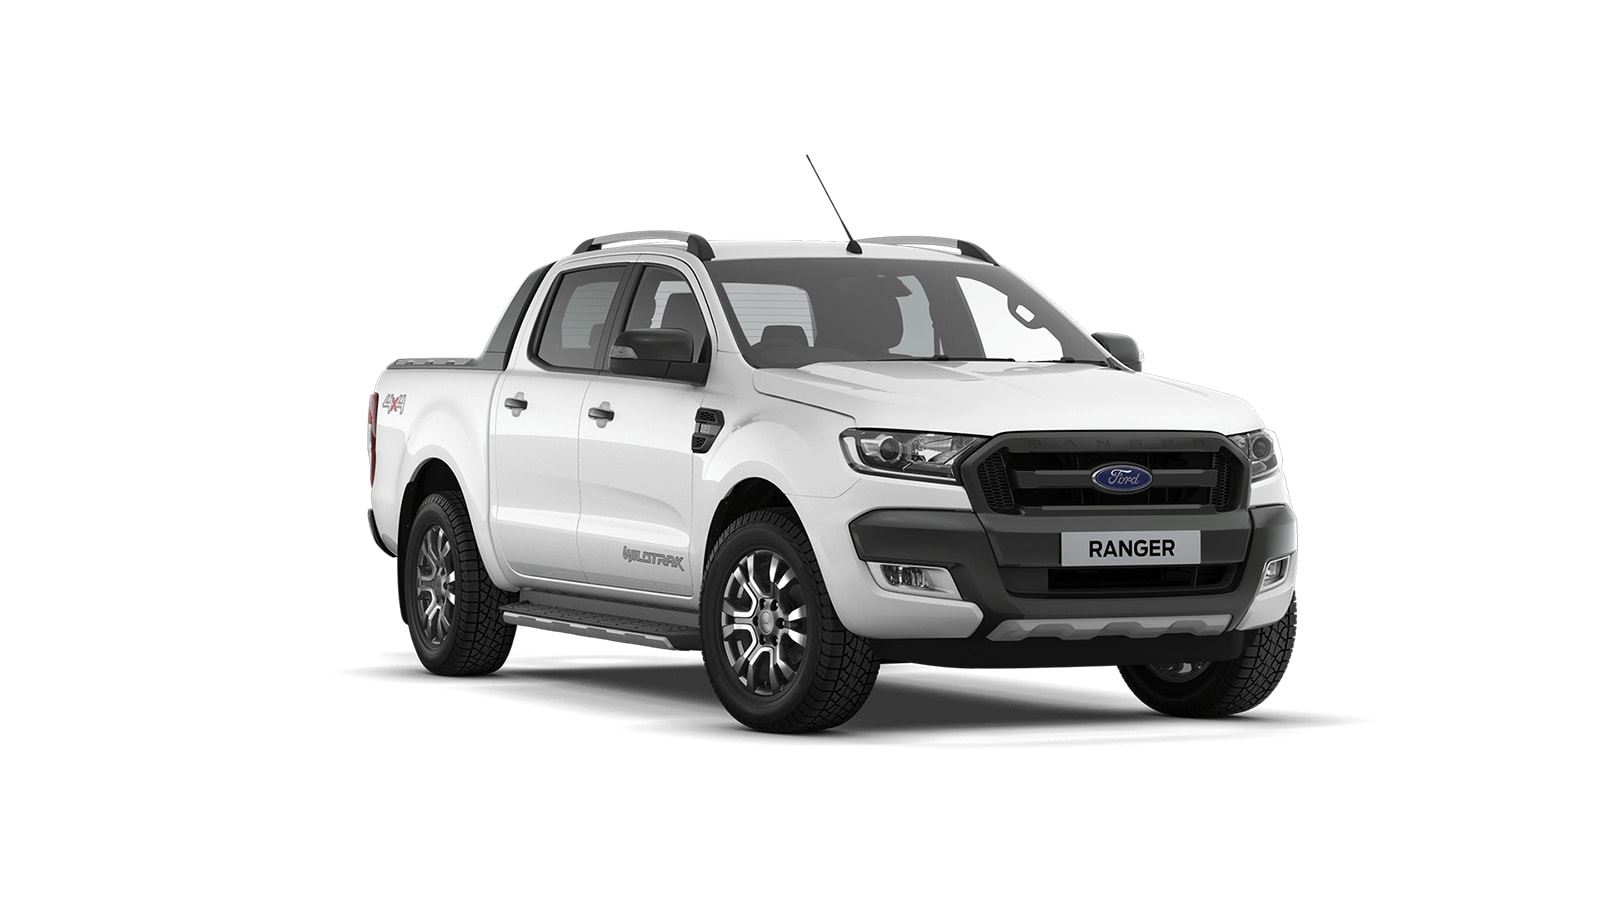 Ford Ranger White 2017 >> Ford Ranger Wildtrak 2014 White | www.pixshark.com - Images Galleries With A Bite!